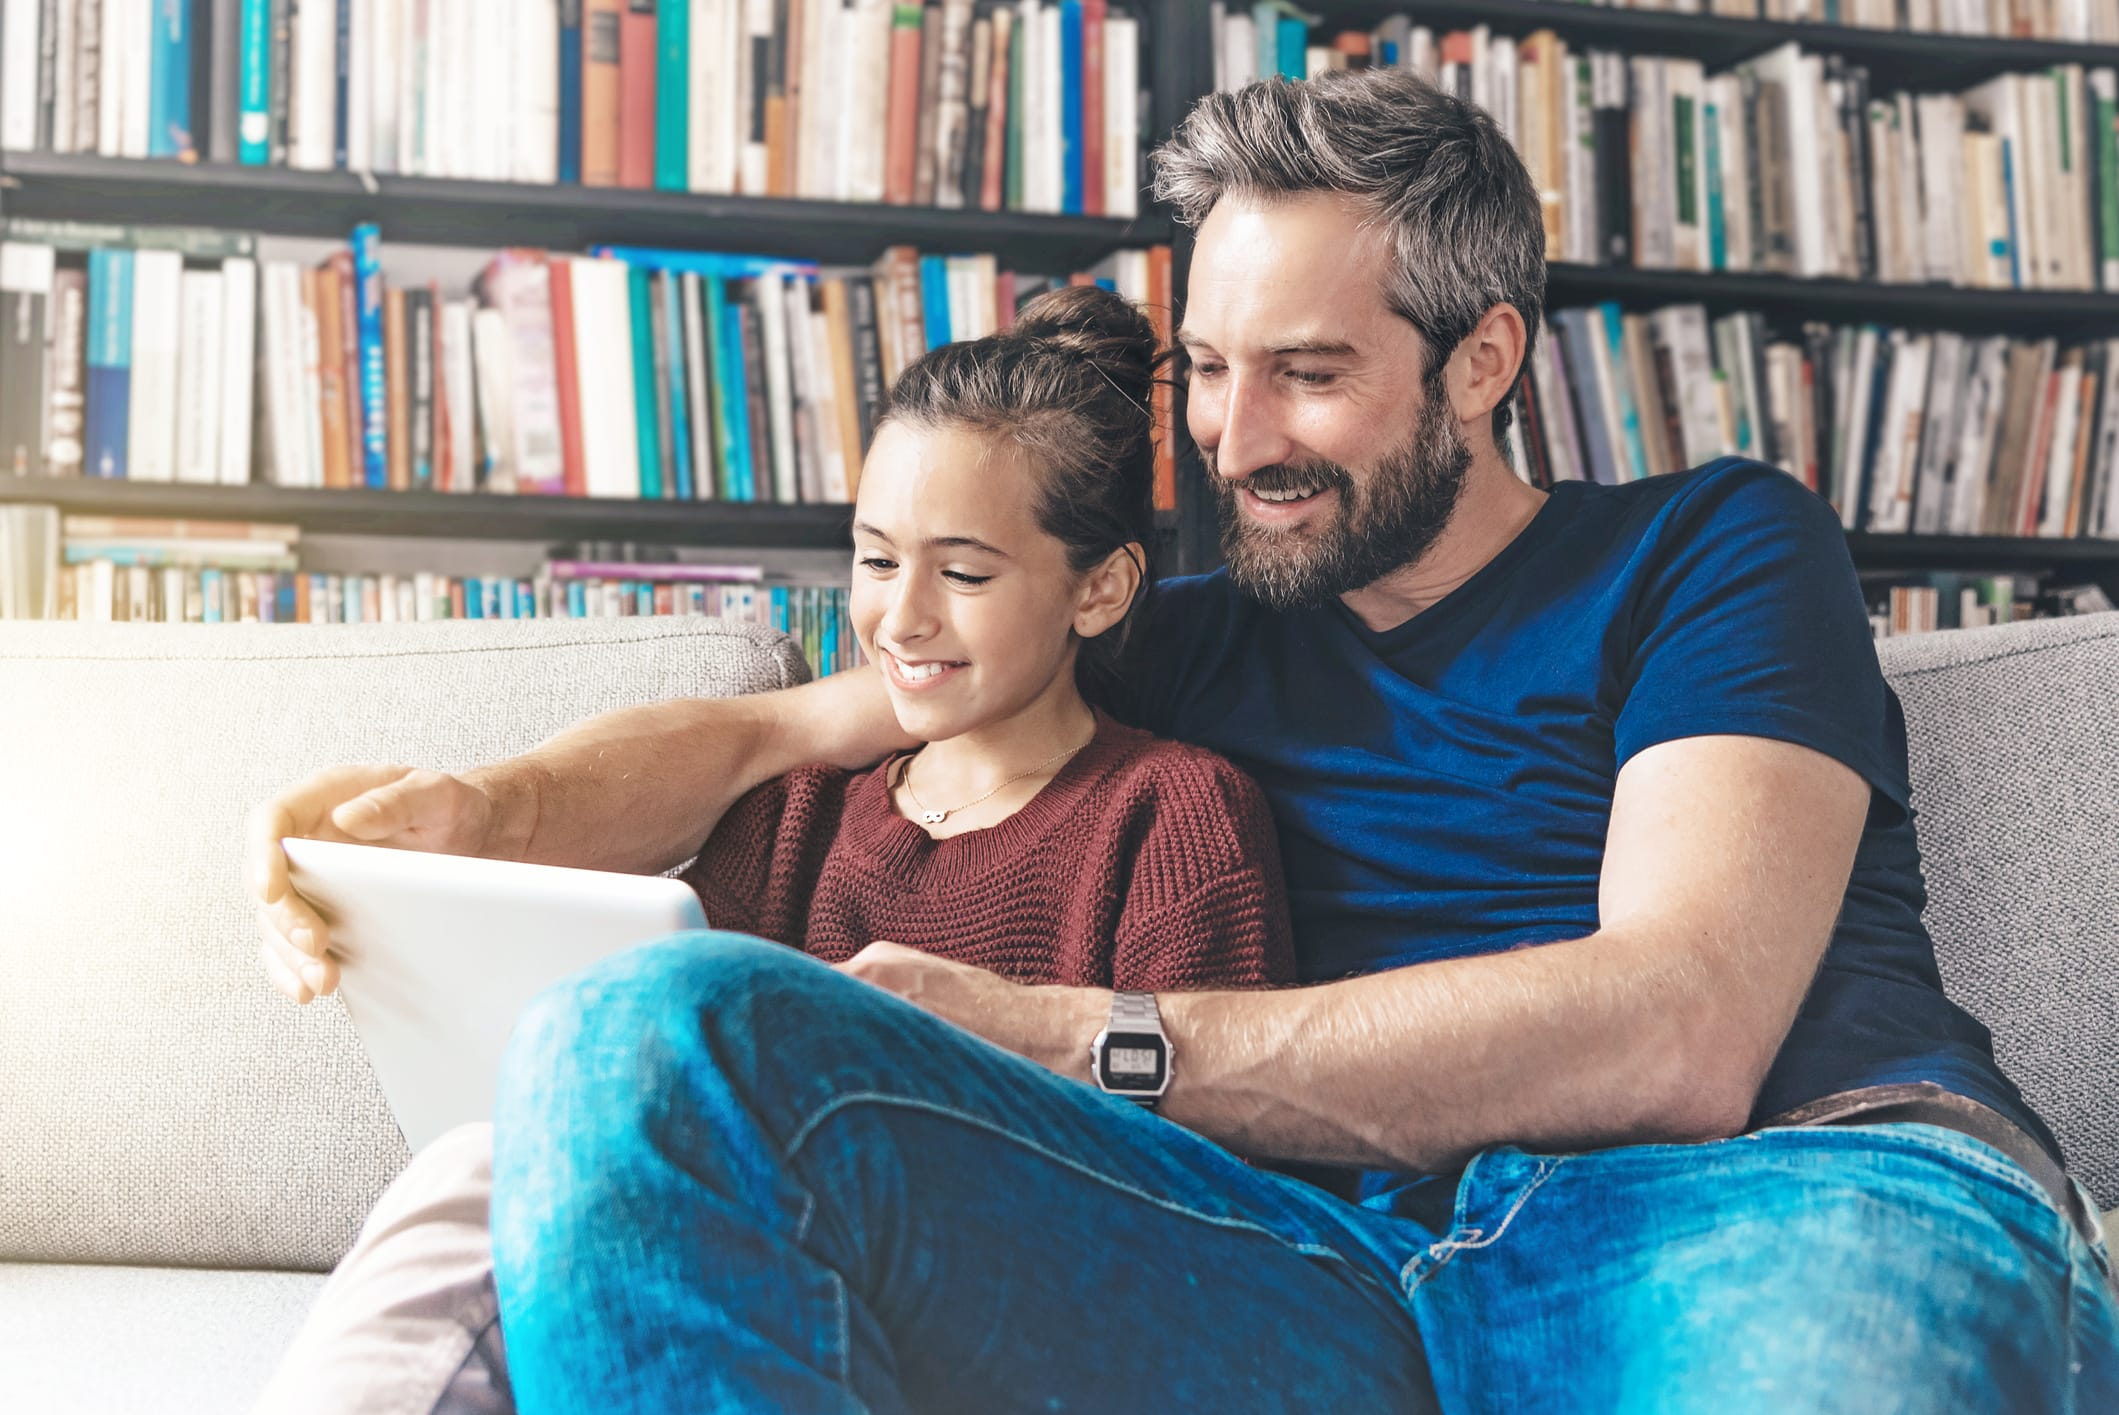 How Can I Protect My Child from Strangers Online?